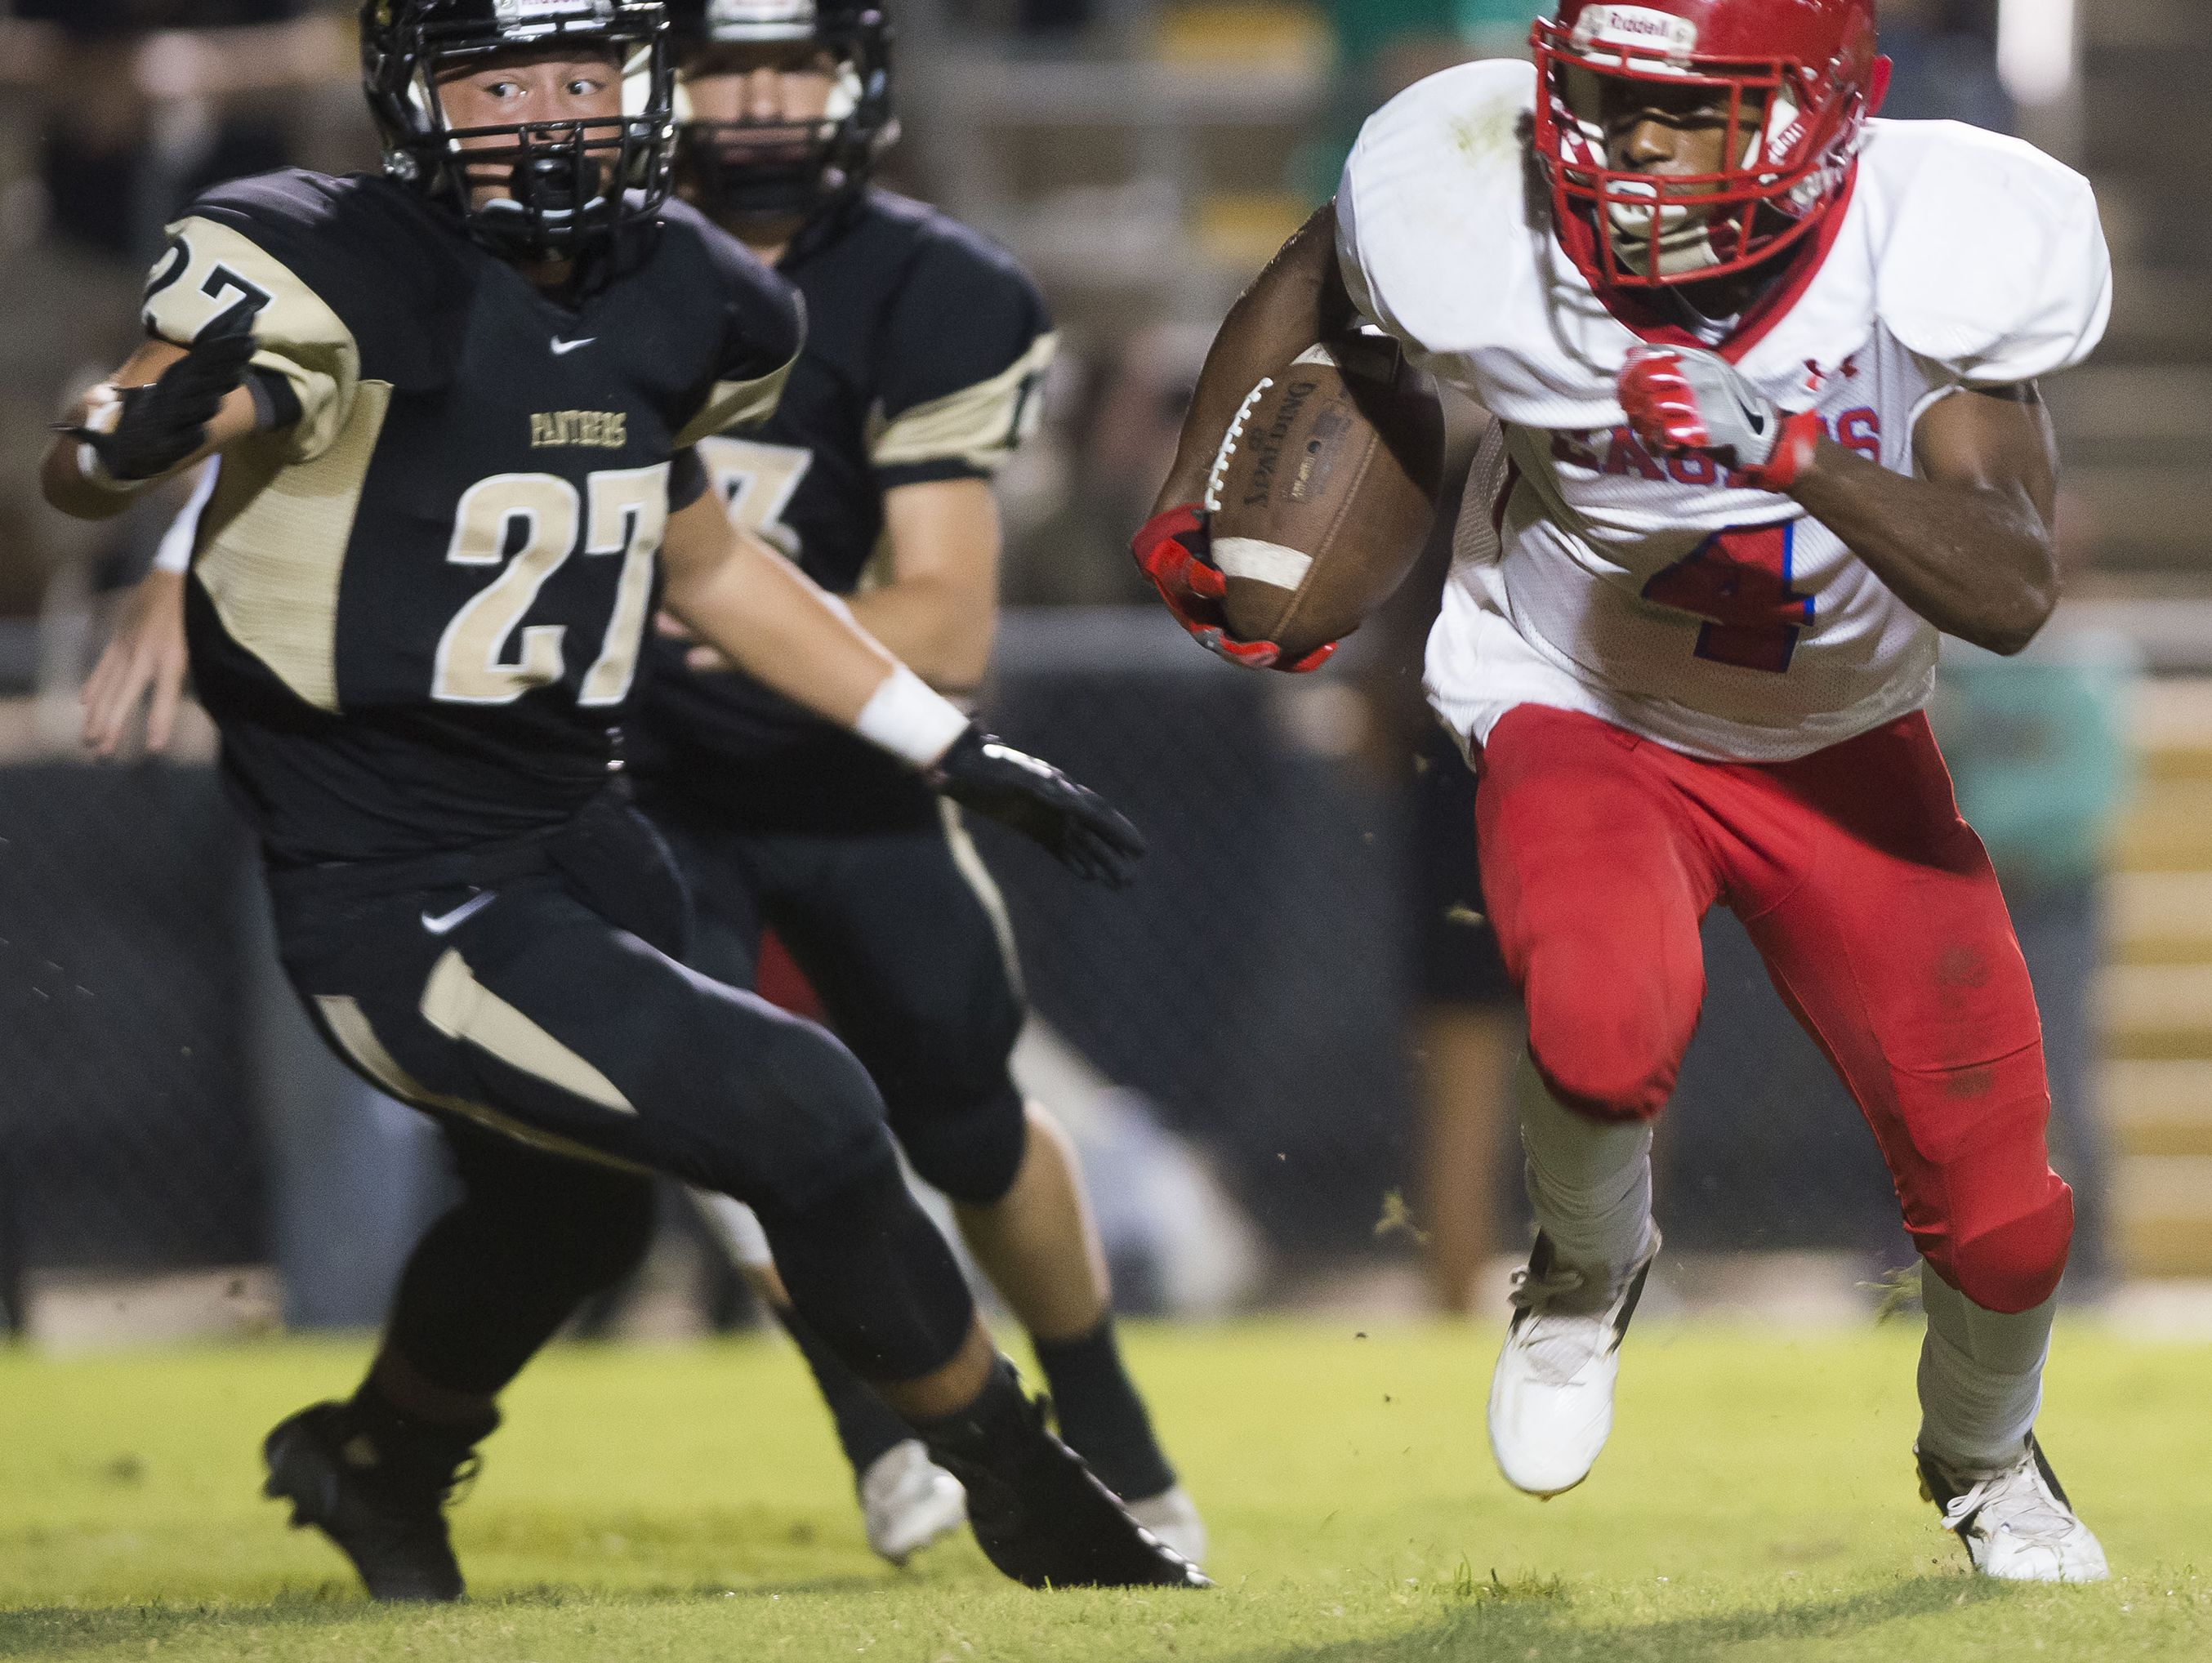 Pine Forest High running back, Ladarius Wiggins, (No. 4) slips past Milton High middle line backer, Michael Mullen, (No. 27) during the first quarter in Friday night's game against the Panthers.